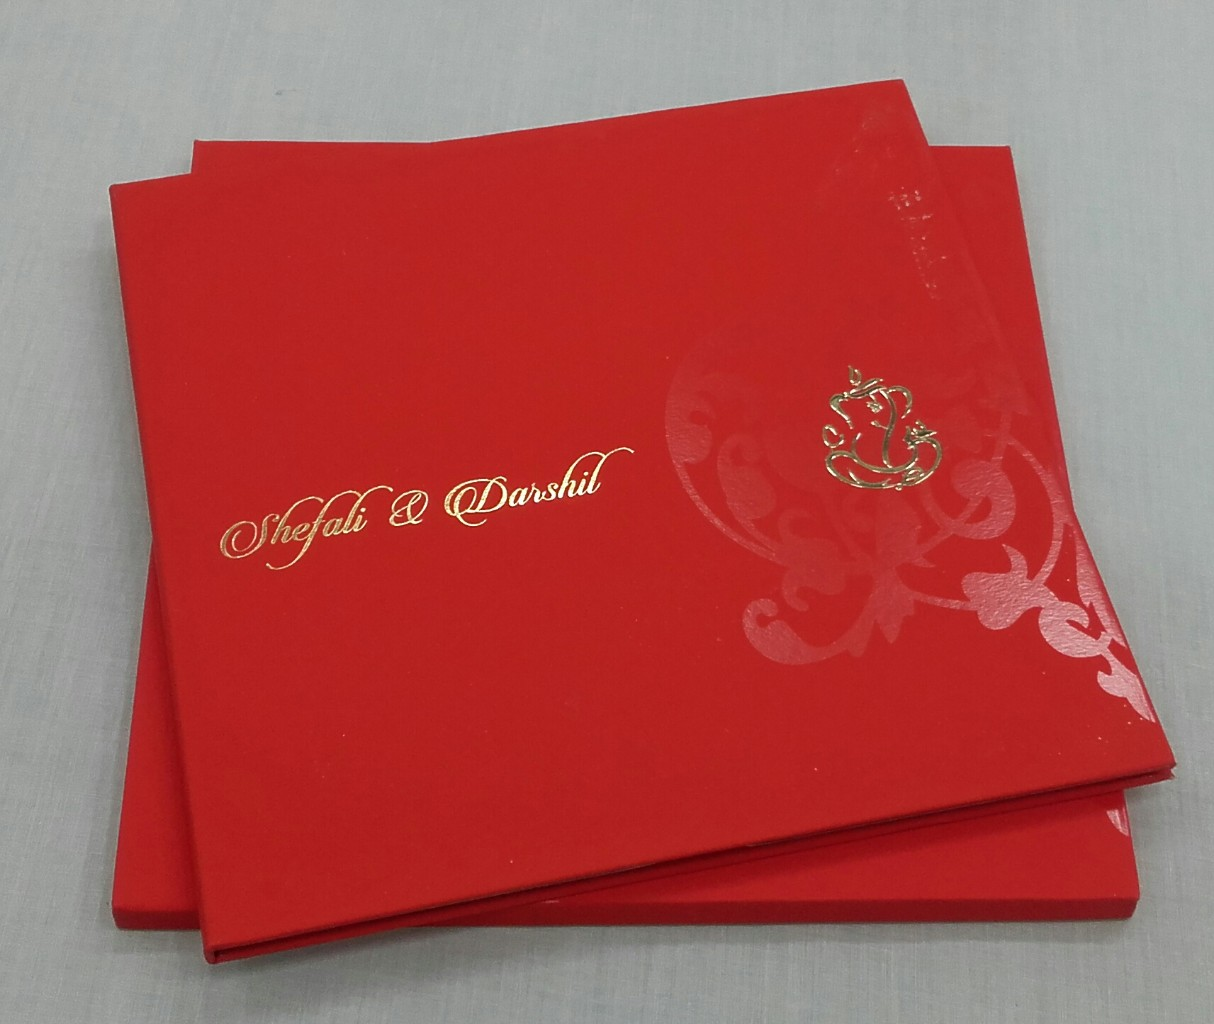 Indian Wedding Card In Red With Traditional Marriage Ceremony Images